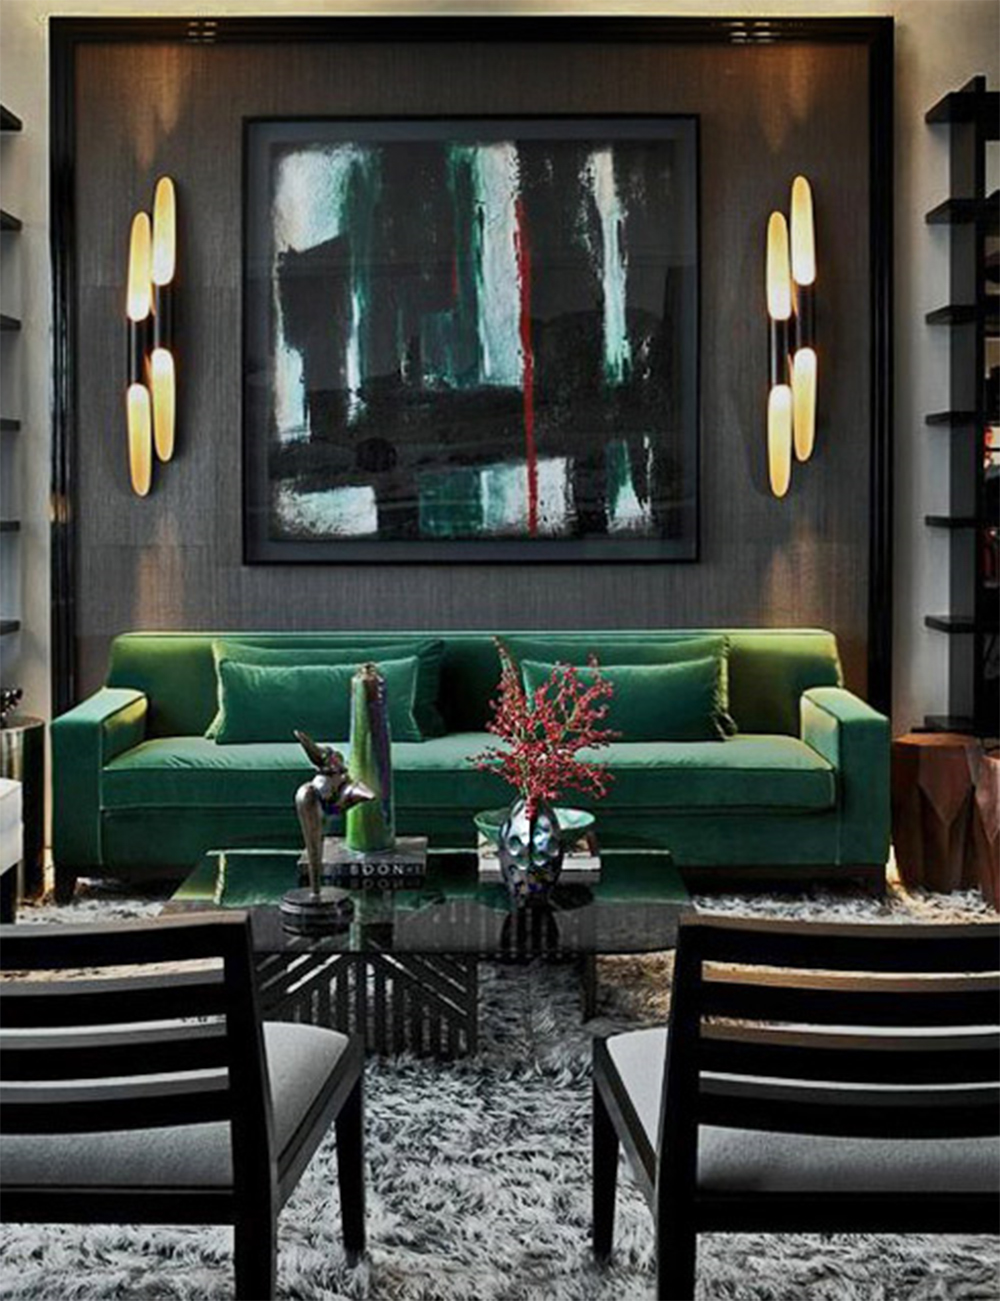 DelightFULL-Living-roomDark-Romantic-Green-and-Black-1774262 Inspired By Nature: How to Add Green to Your Home